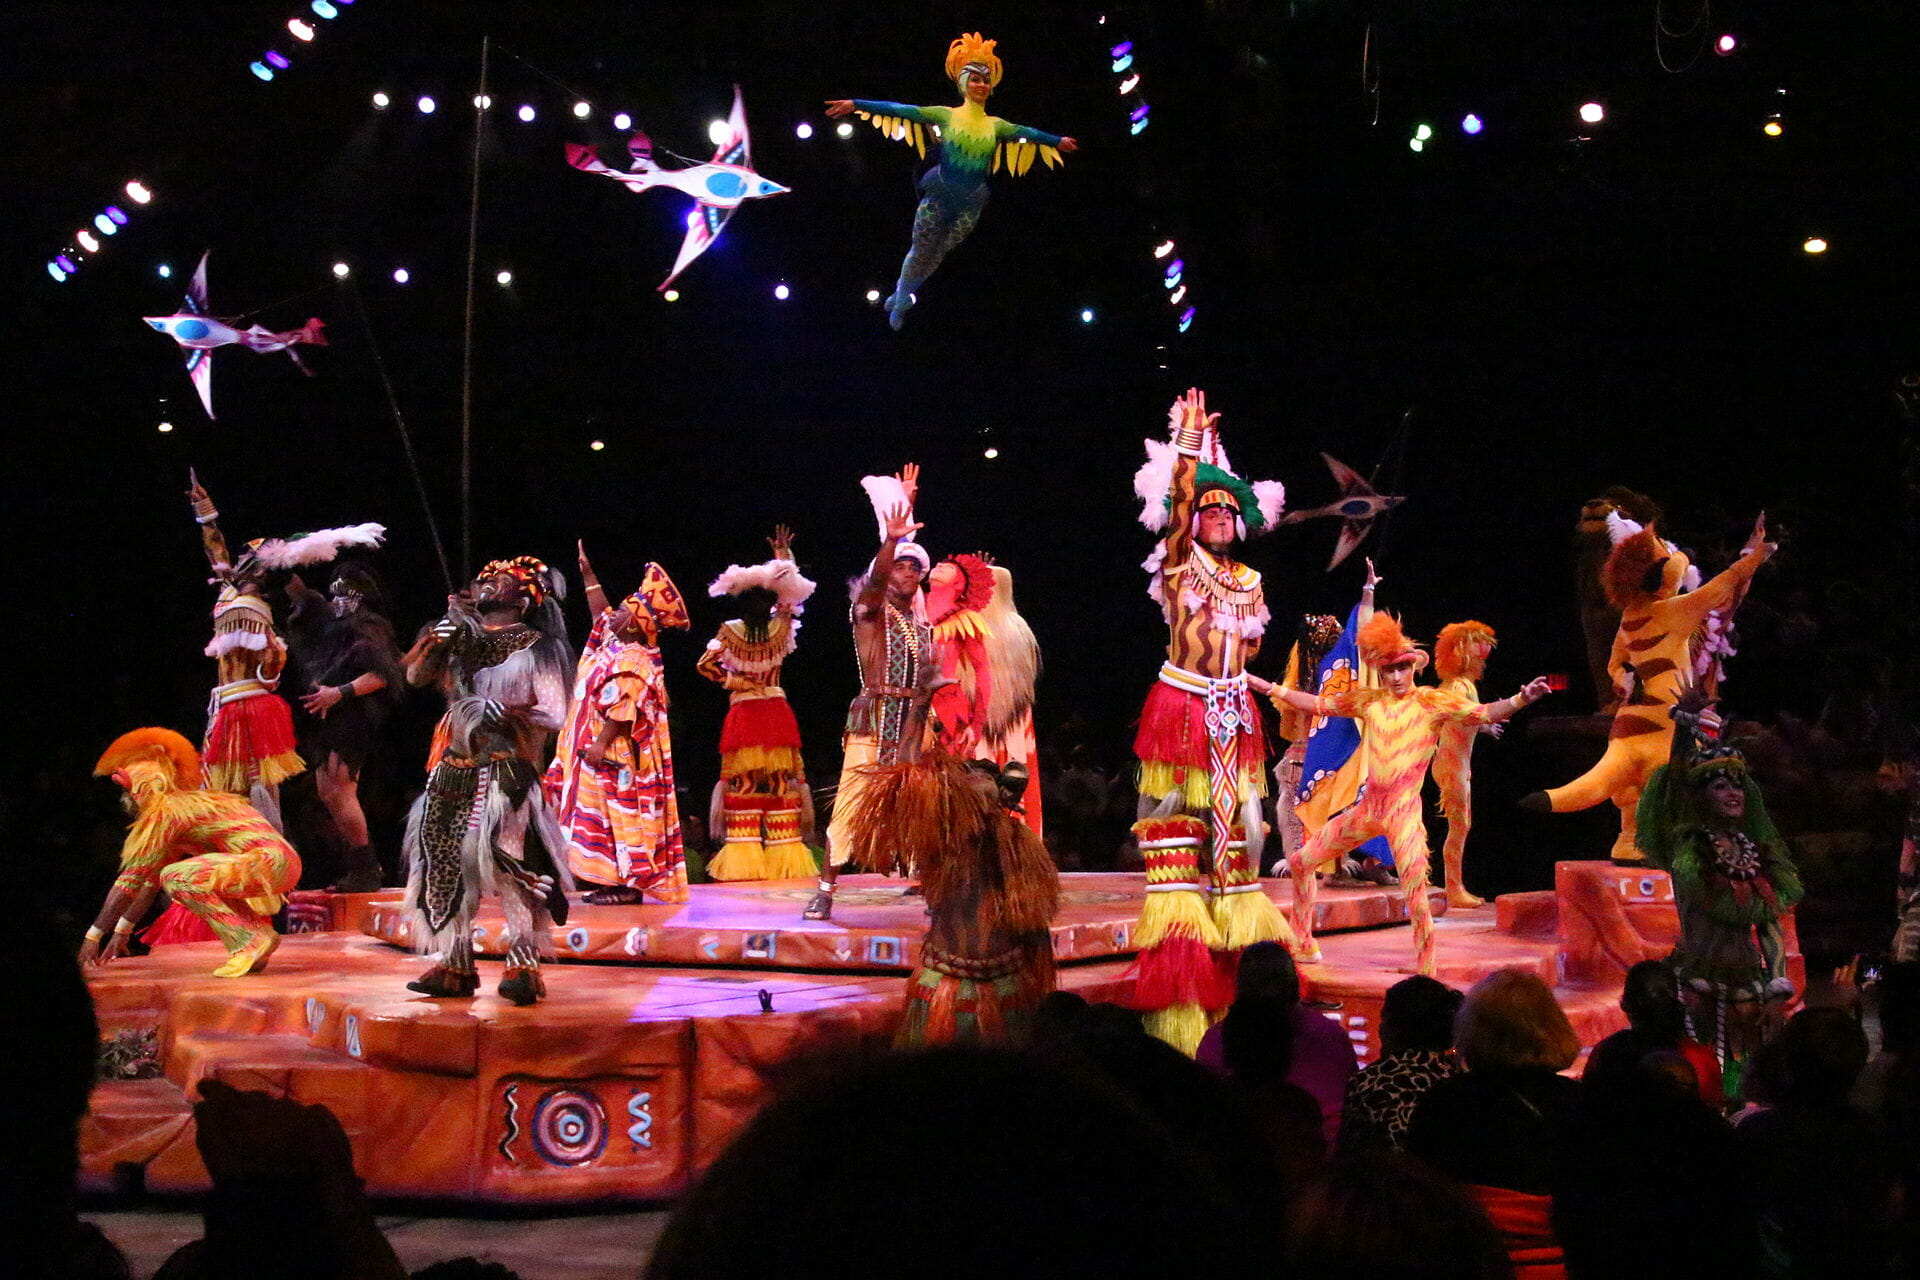 Costumed actors on stage dressed as animals or holding animal figures, and a flying lady dressed as a bird